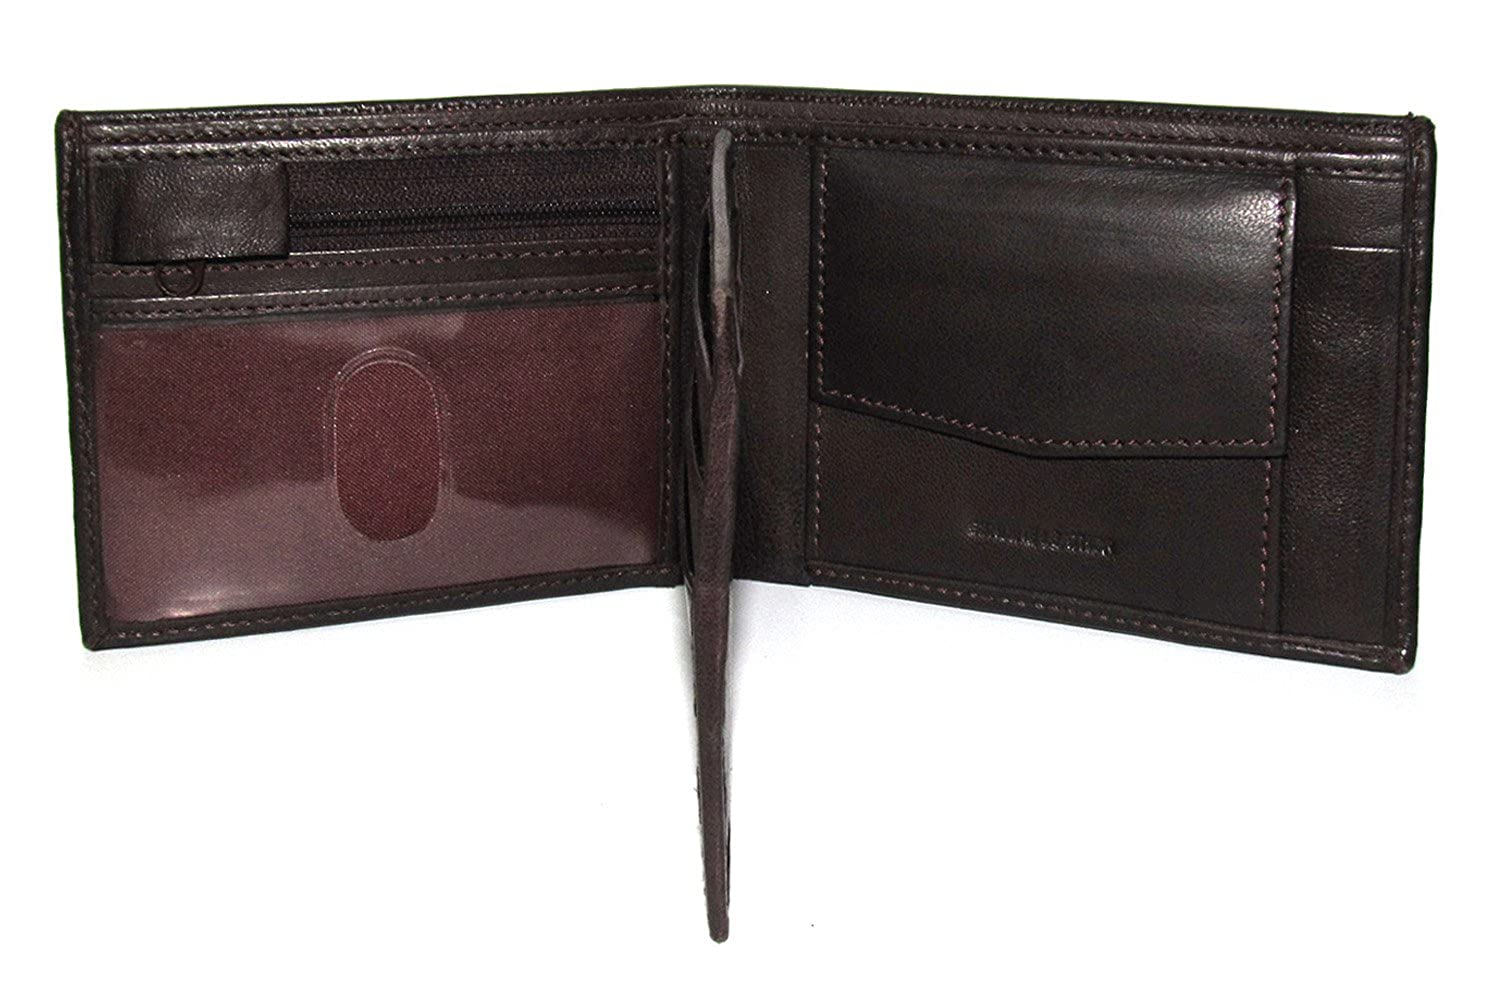 Sakkas Bifold Wallets for Men with Coin Pocket and Credit Card Slots 5055460189135